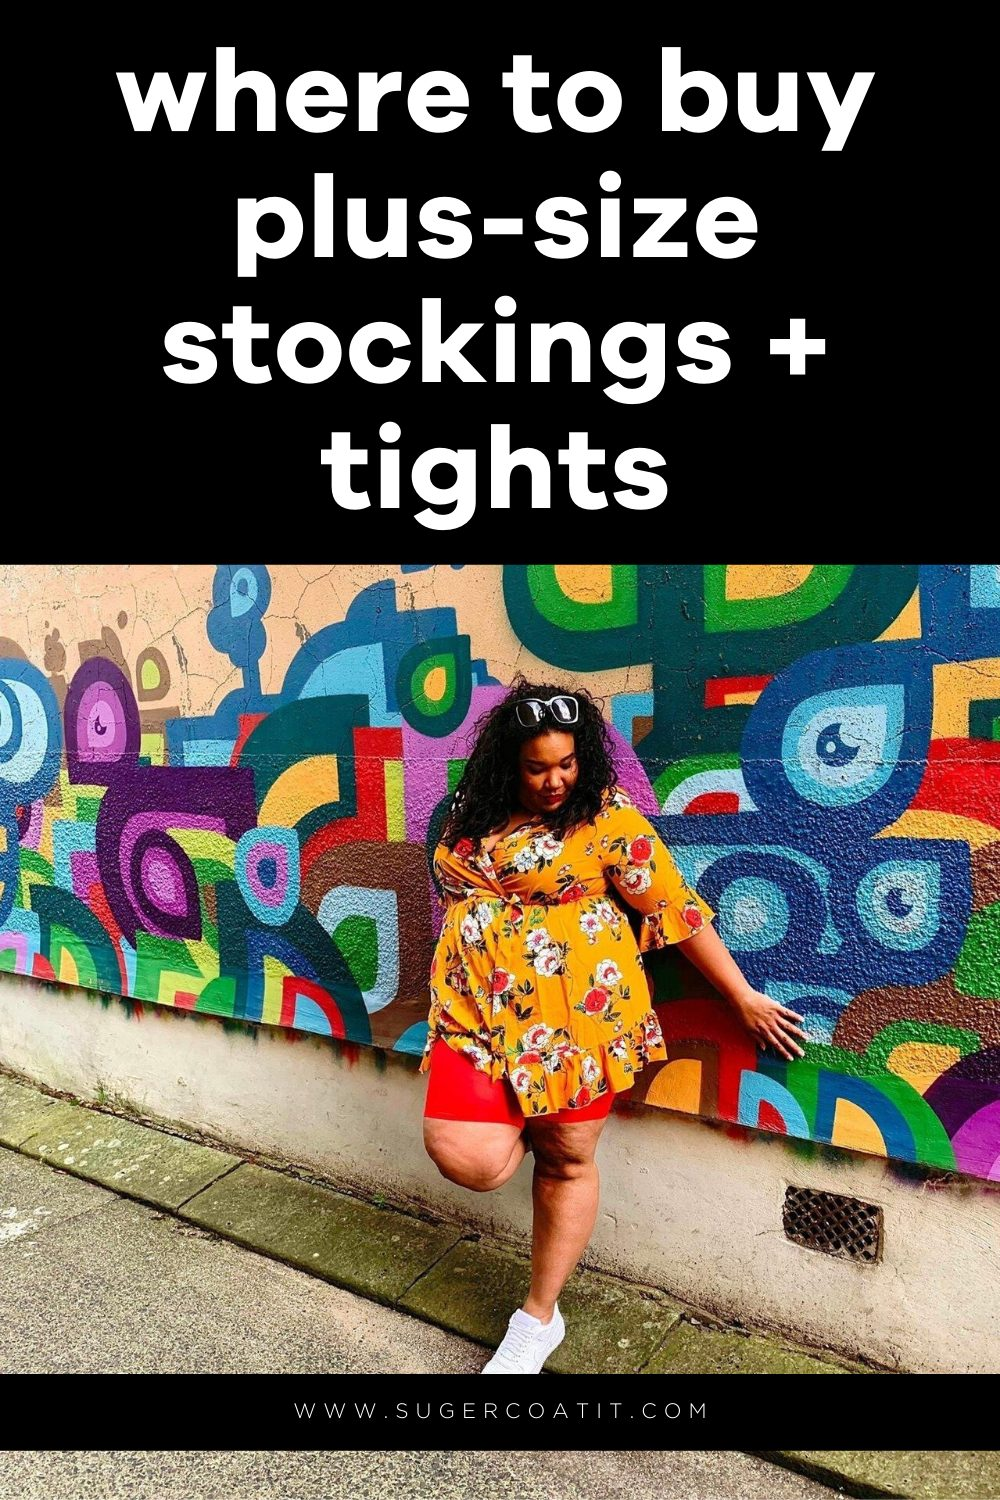 Where to buy plus-size stockings + tights - Suger Coat It